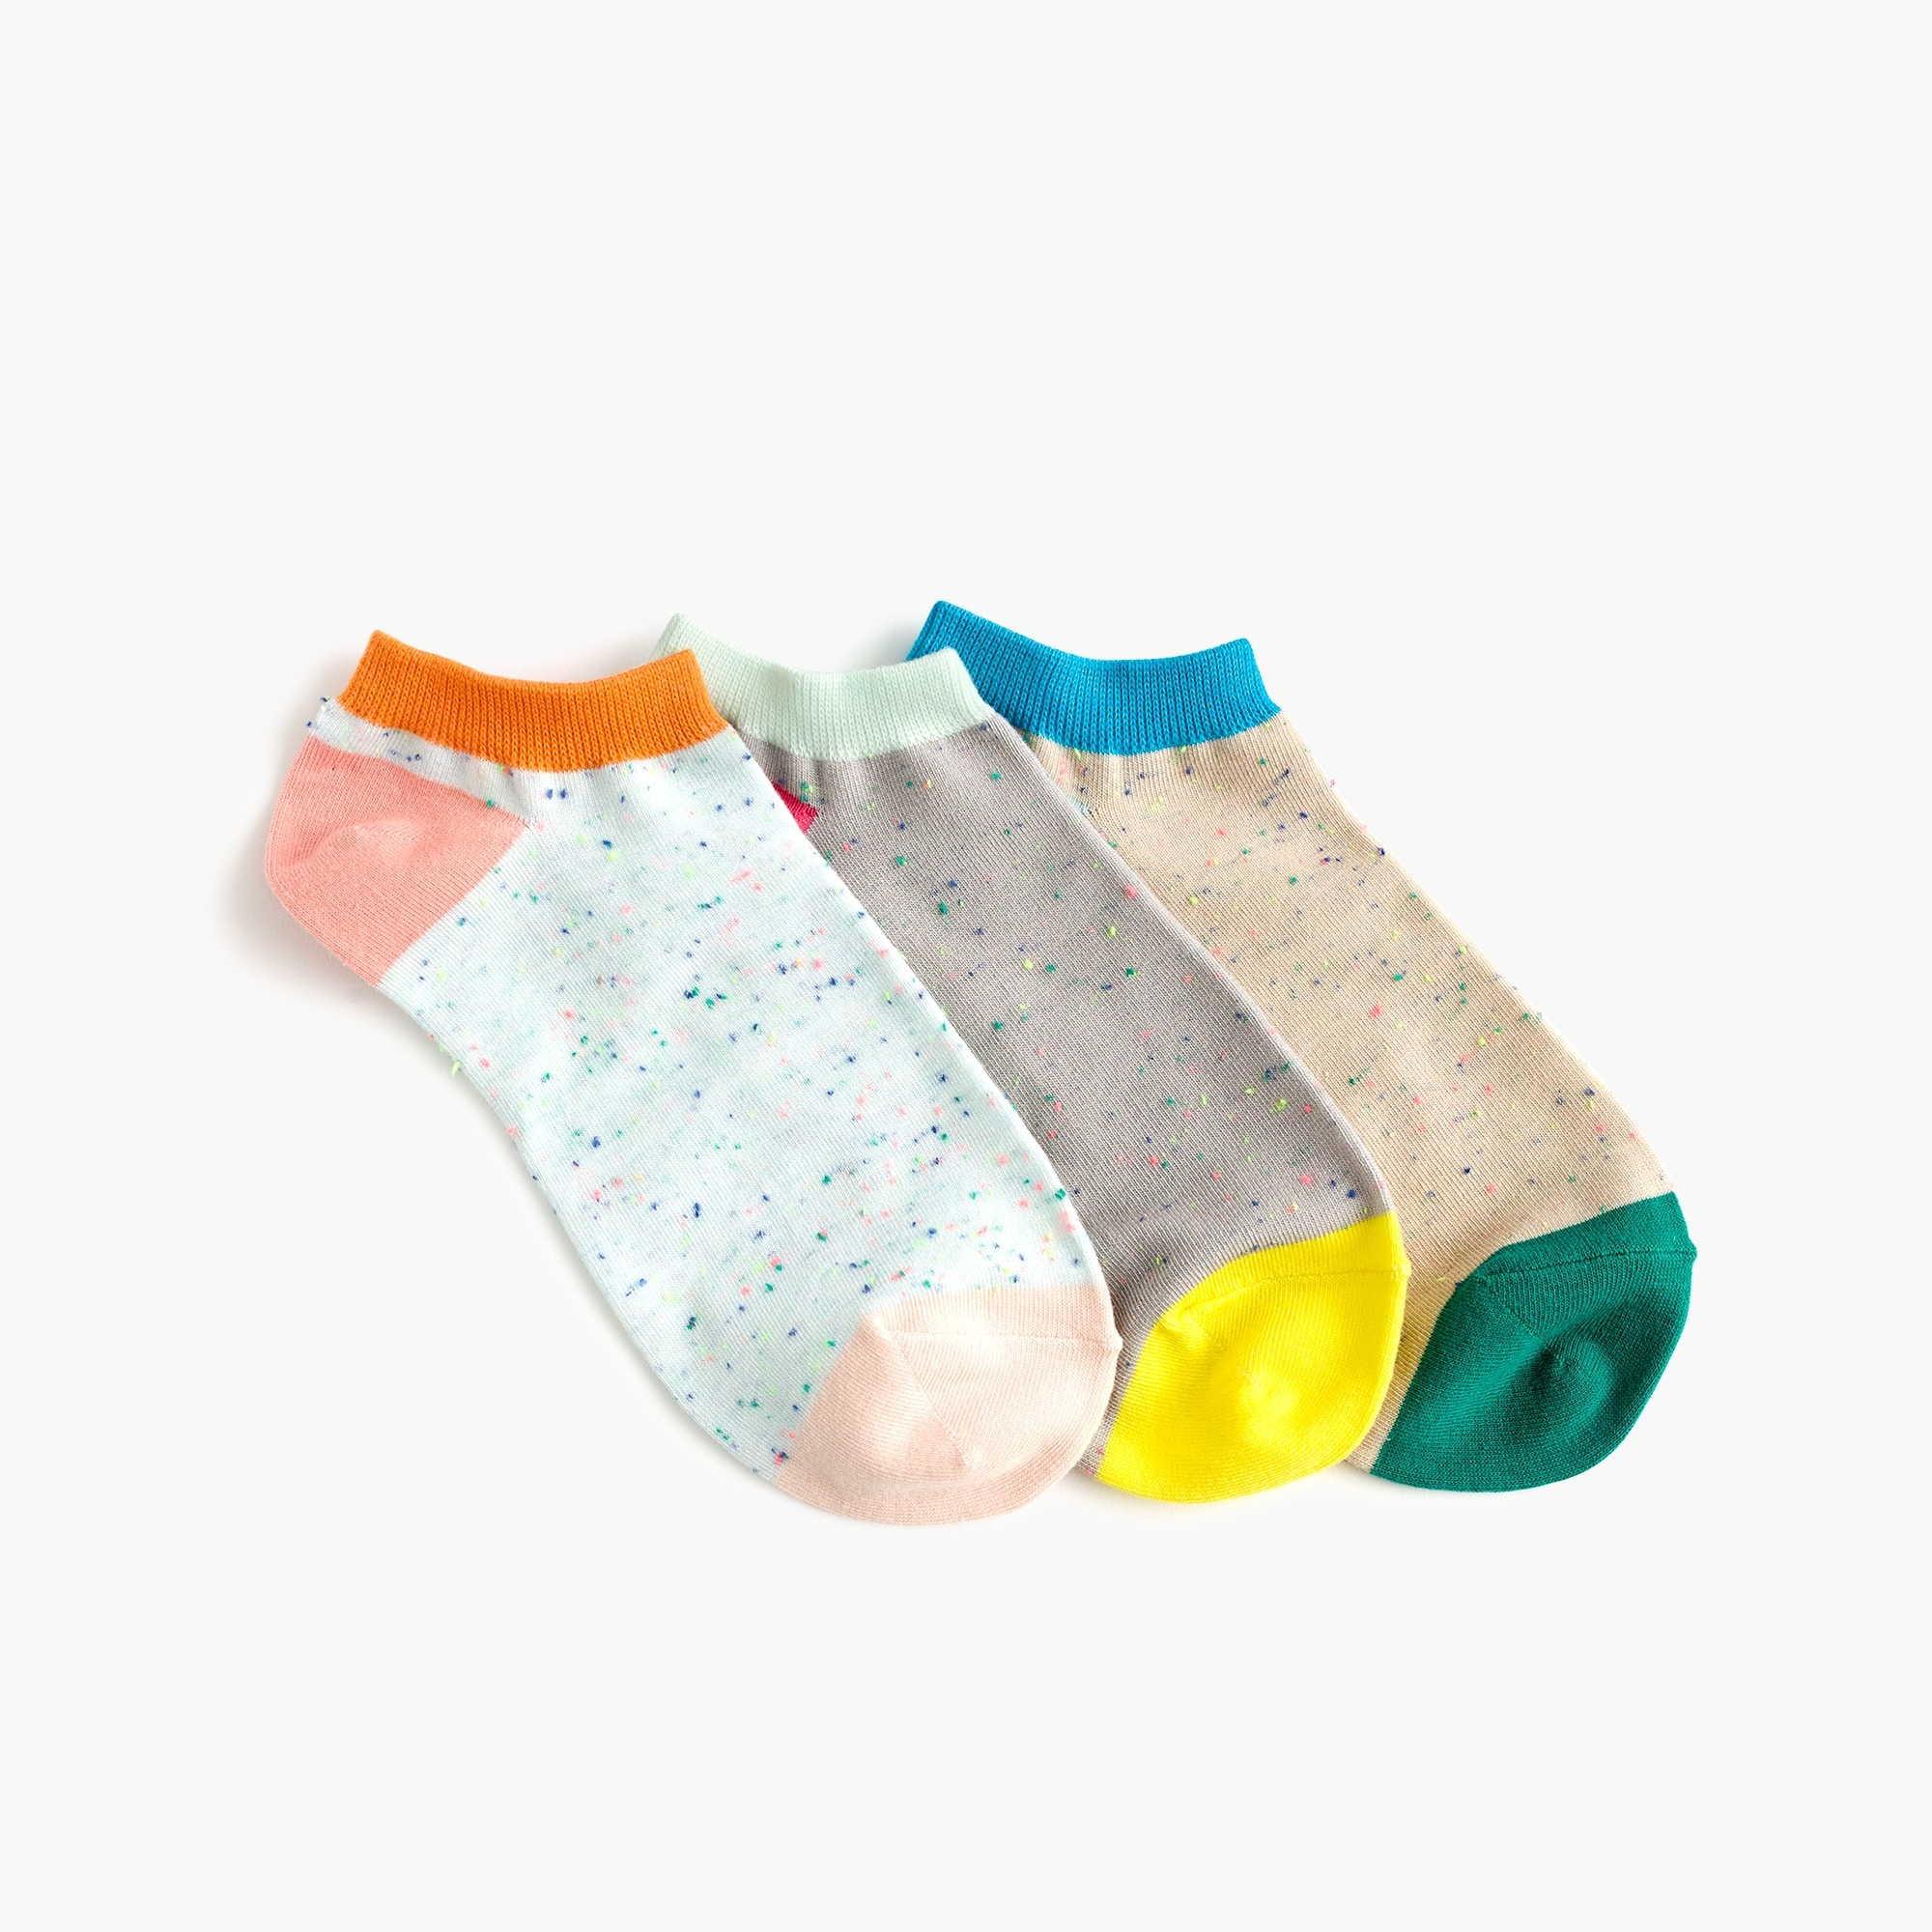 women's ankle socks three-pack in donegal colorblock - women's socks